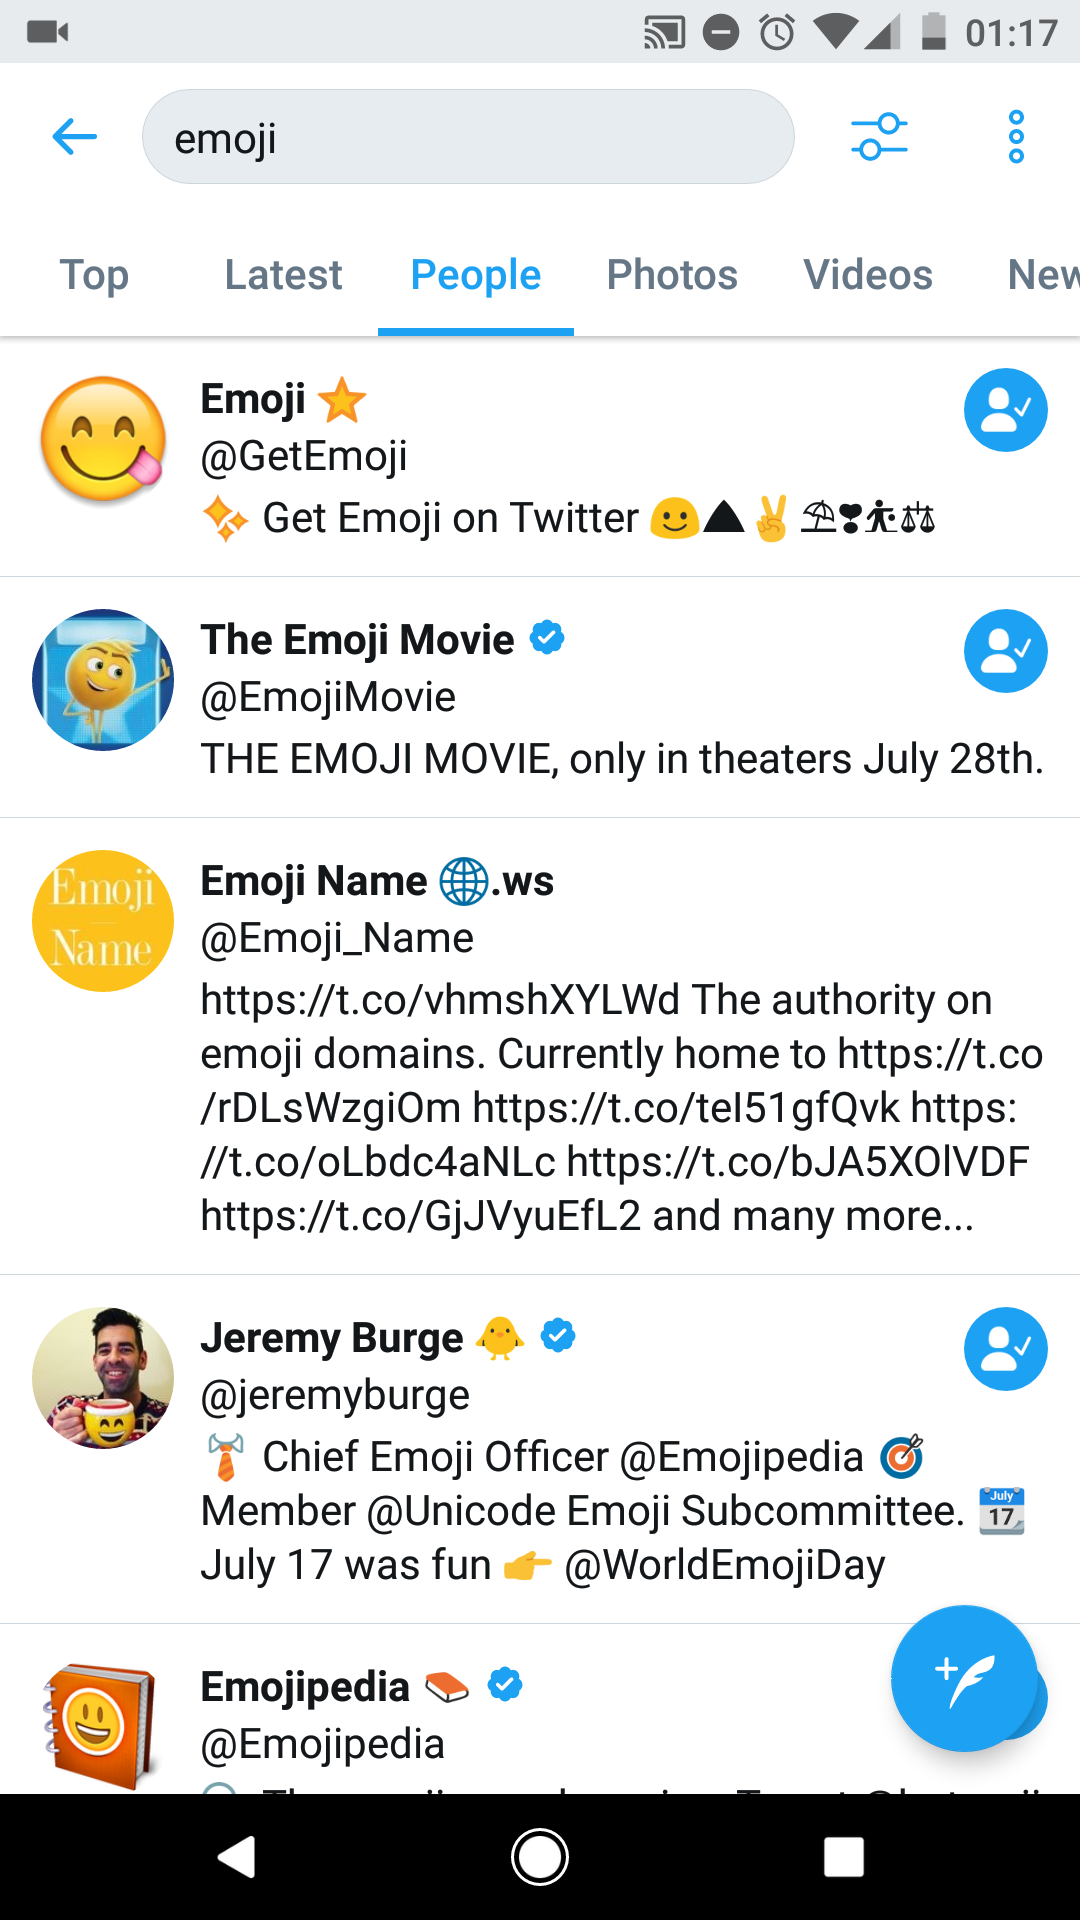 Part 5: 📱🔥 How to use emoji domains on social - ART + marketing